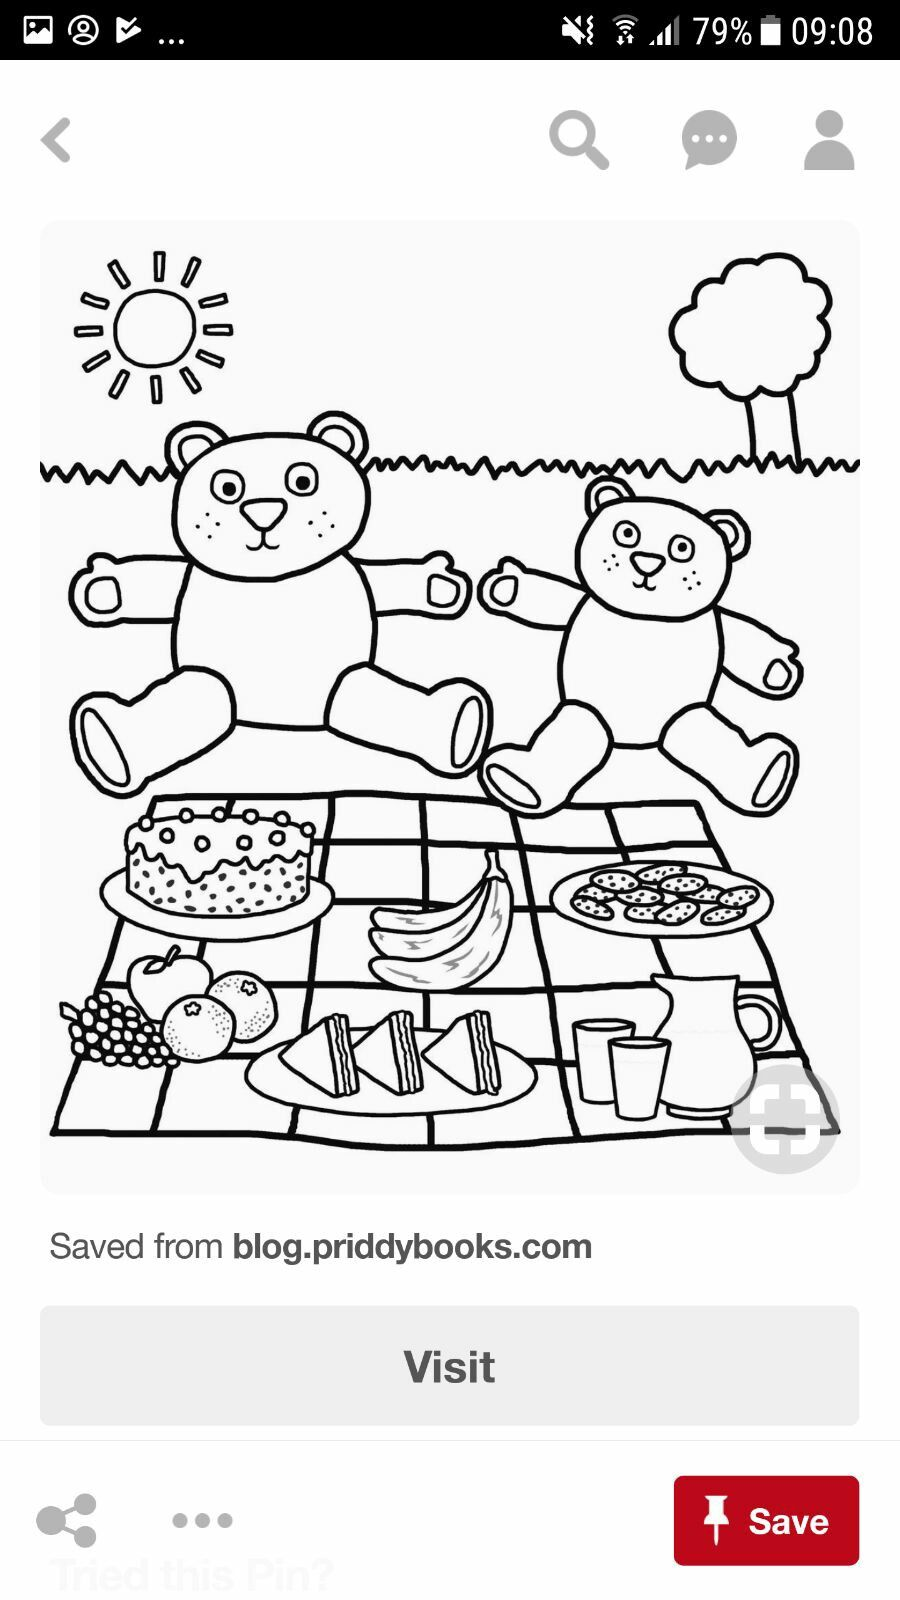 Pin by Rae Smits on picnic | Teddy bear coloring pages ...